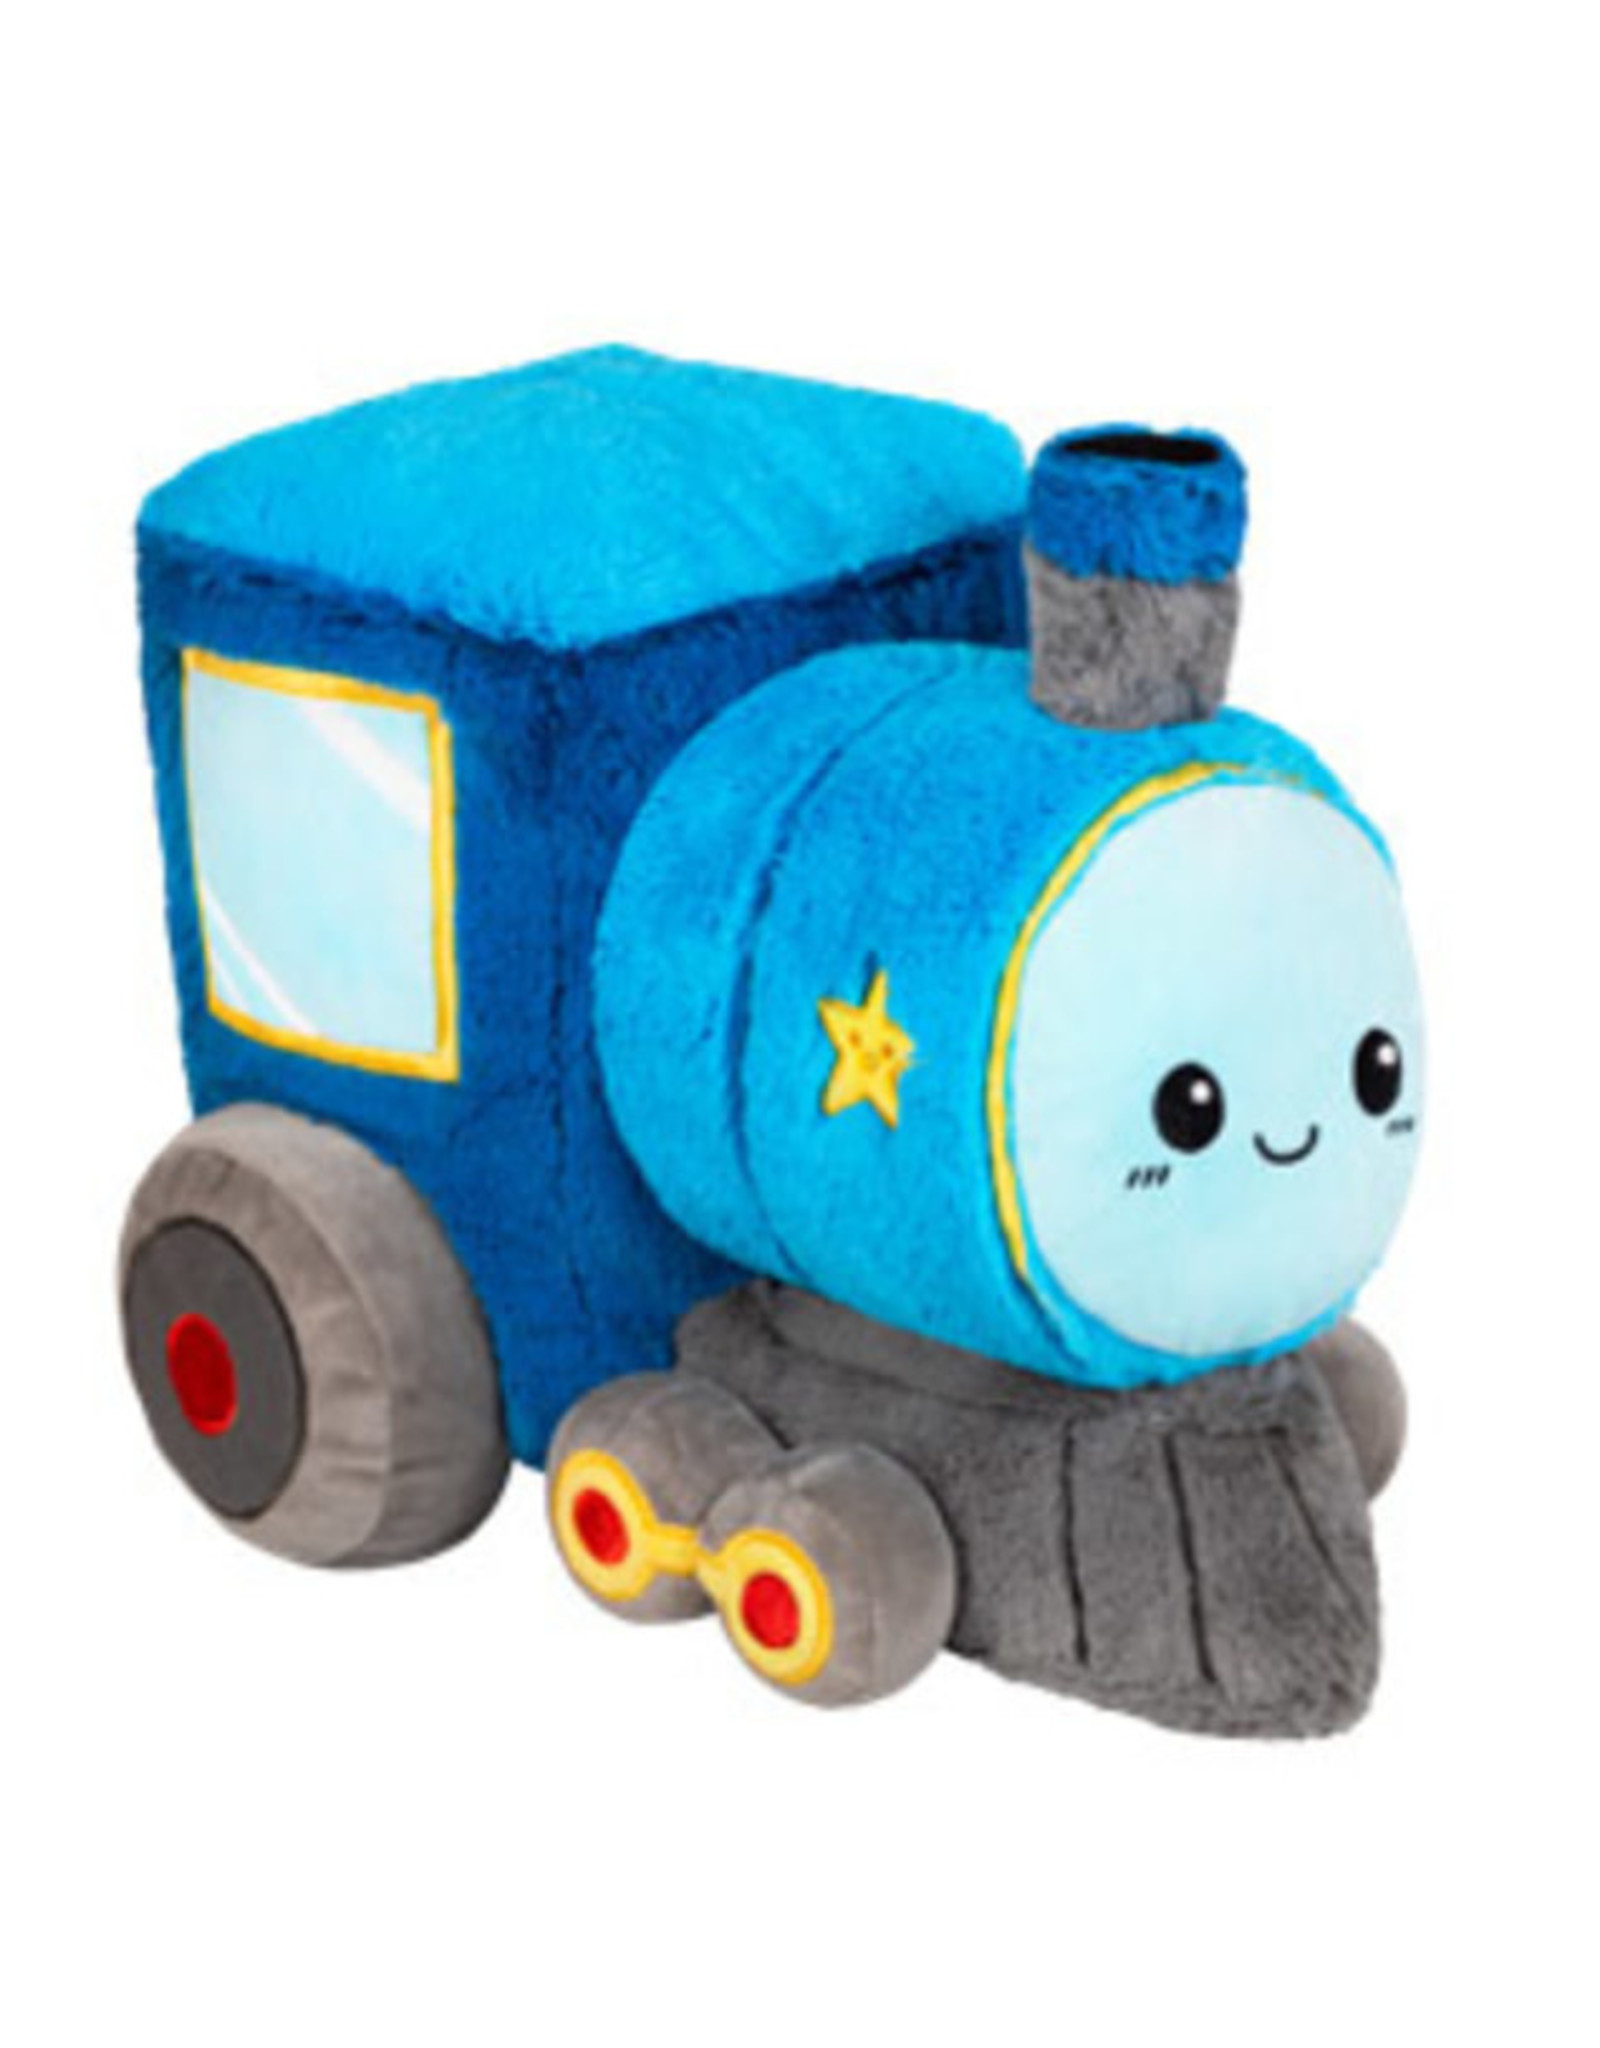 Squishable Squishable Go! Train